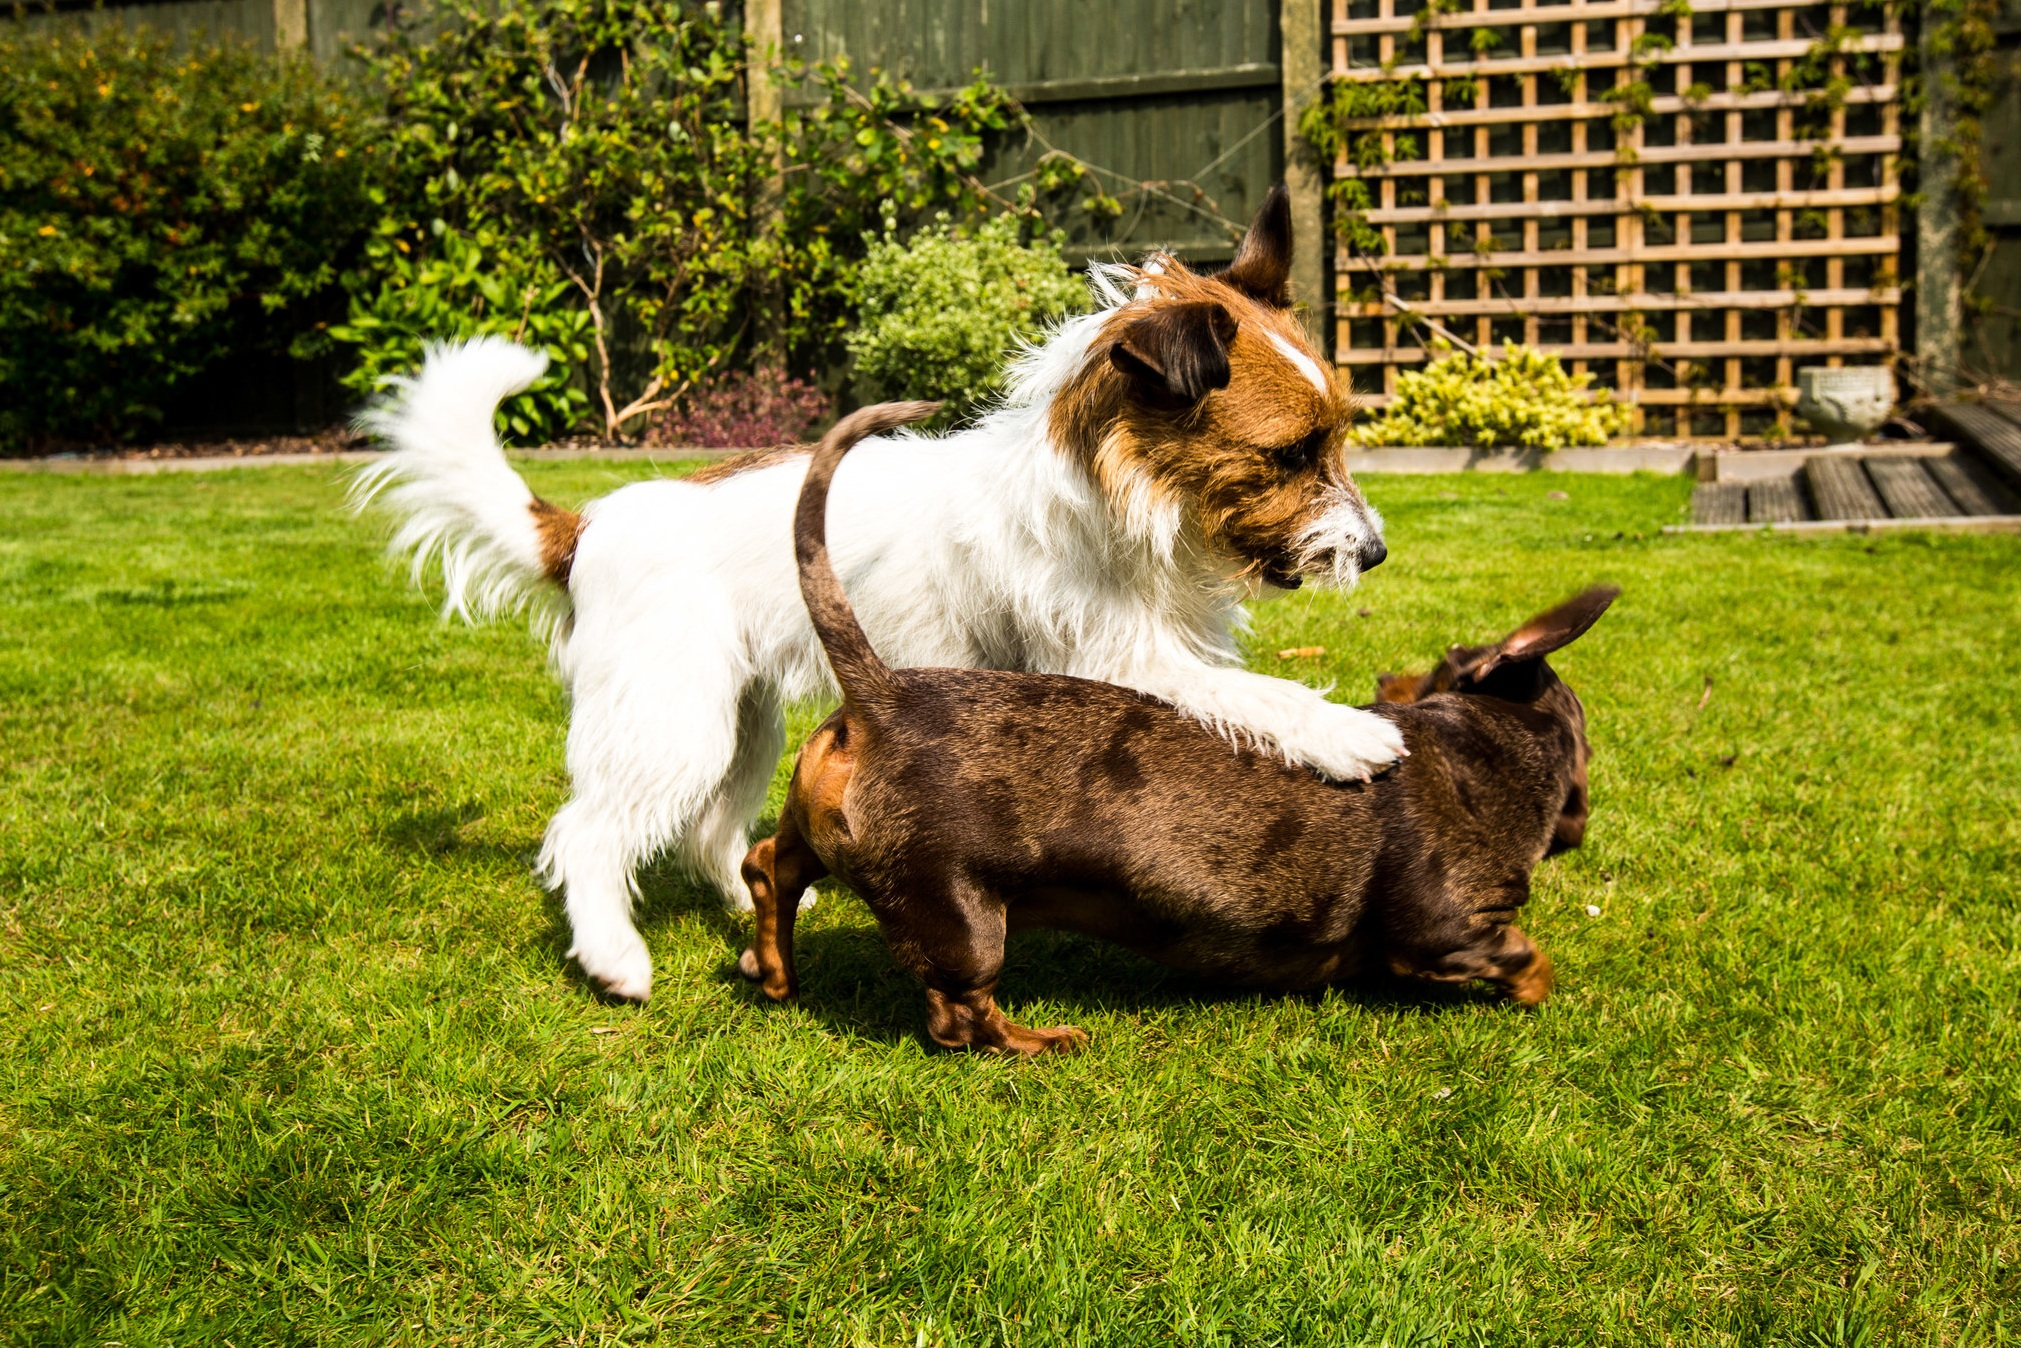 Margot the Long Haired Jack Russell and Dash the Miniature Dachshund playing in the garden.